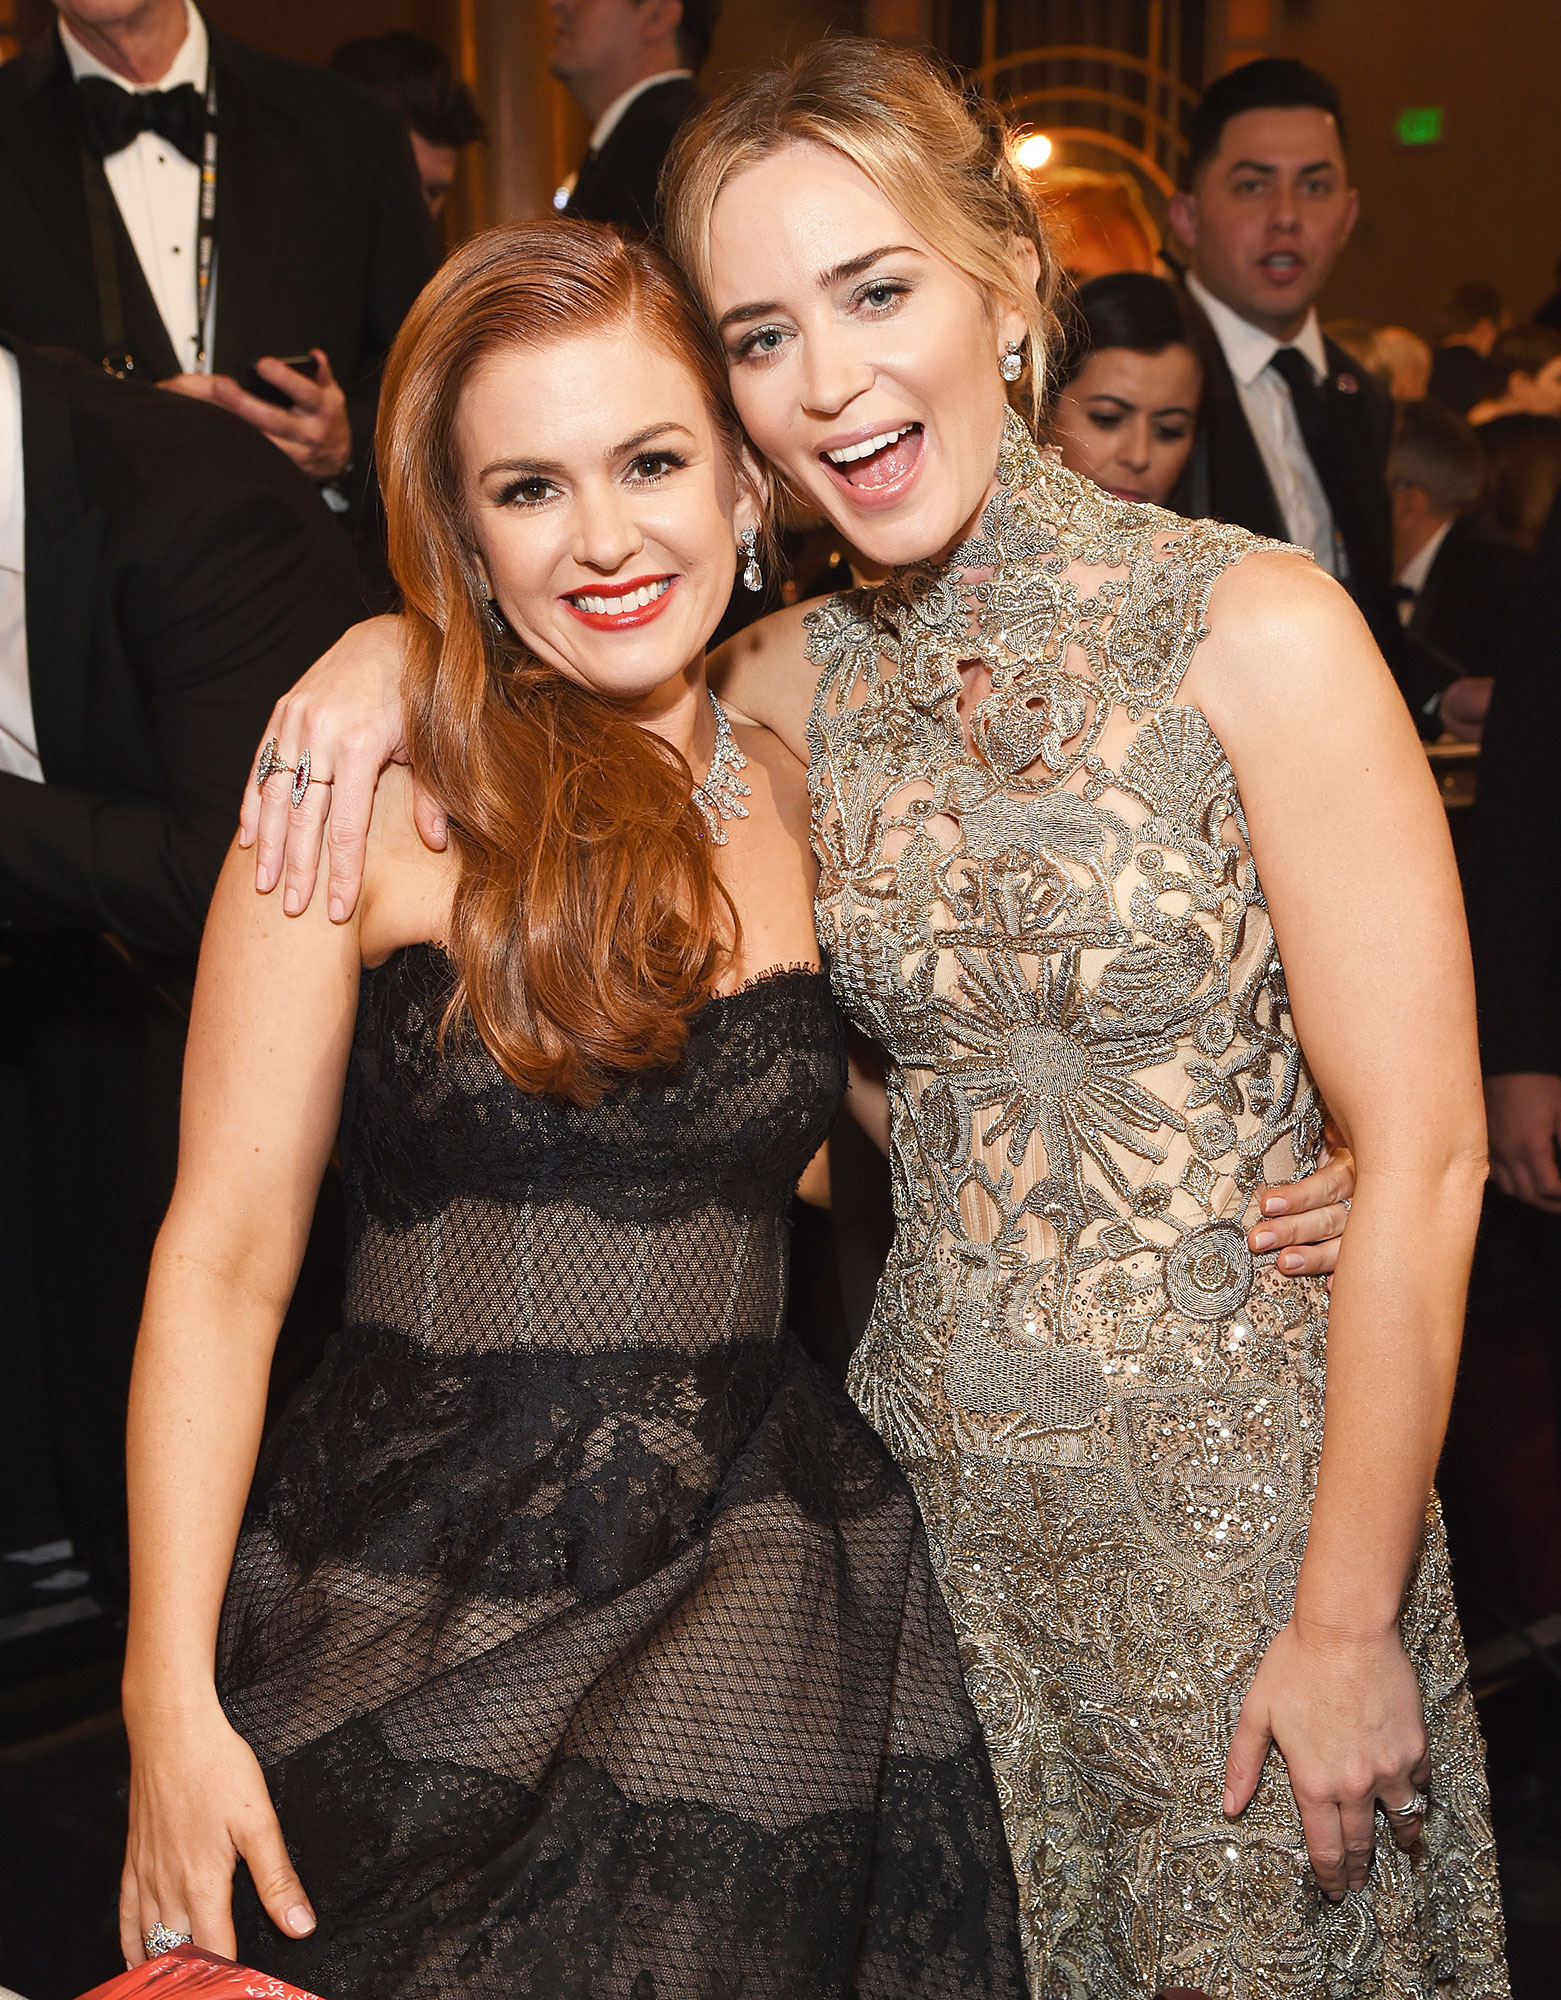 Inside Golden Globes 2019 Isla Fisher and Emily Blunt - Inside Golden Globes 2019 – BEVERLY HILLS, CA – JANUARY 06: (L) Isla Fisher and Emily Blunt attend Moet